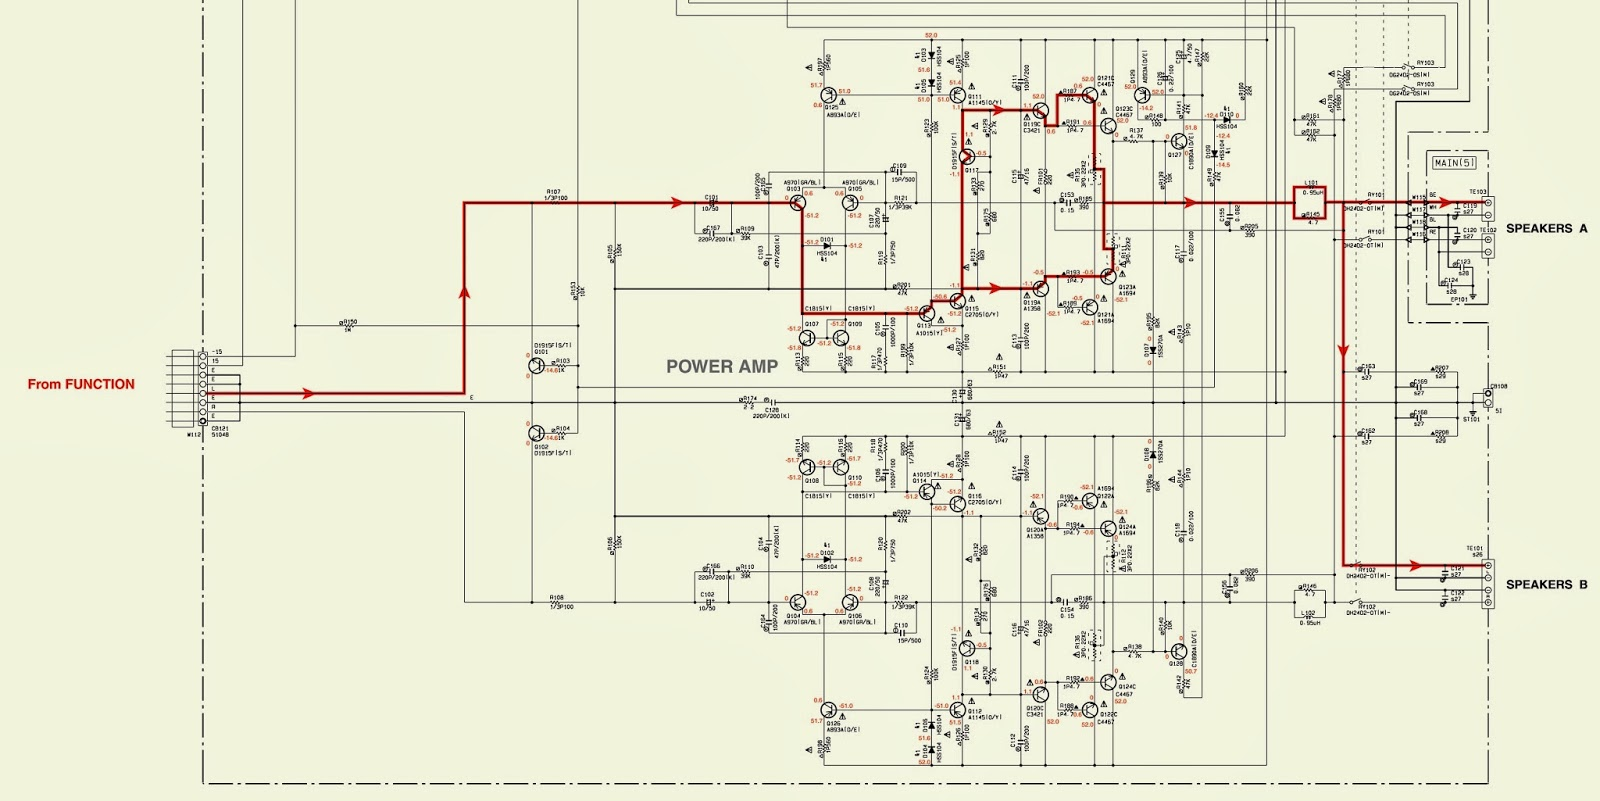 small resolution of yamaha ax 596 power u0026 amp schematic circuit diagram stereoyamaha amp schematic